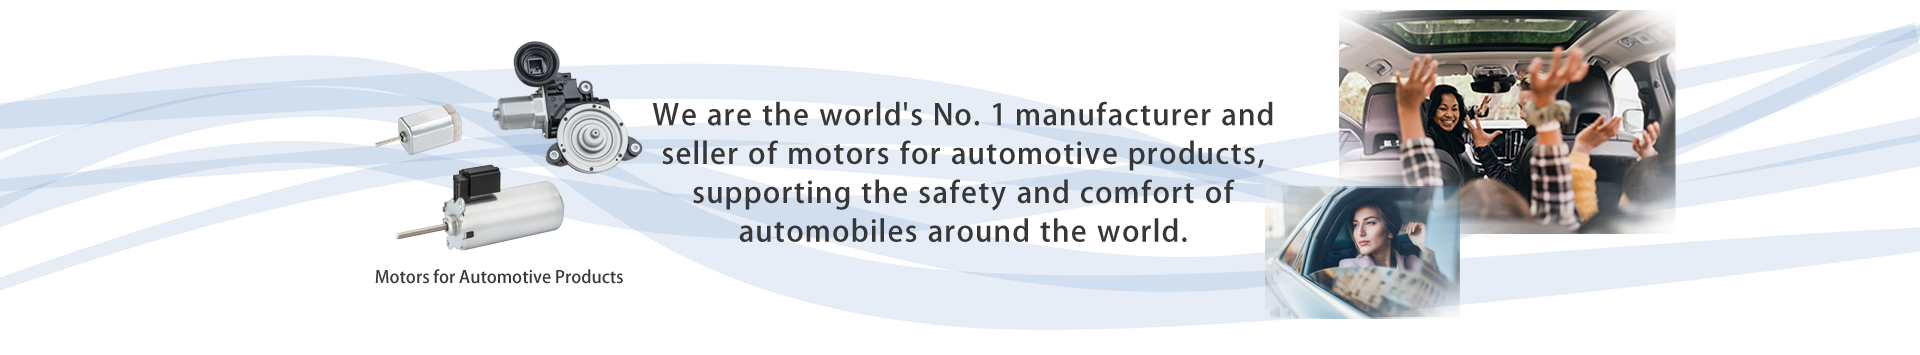 No. 1 in the world in terms of production and sales of motors for automotive applications, we support the safety and comfort of automobiles around the world.